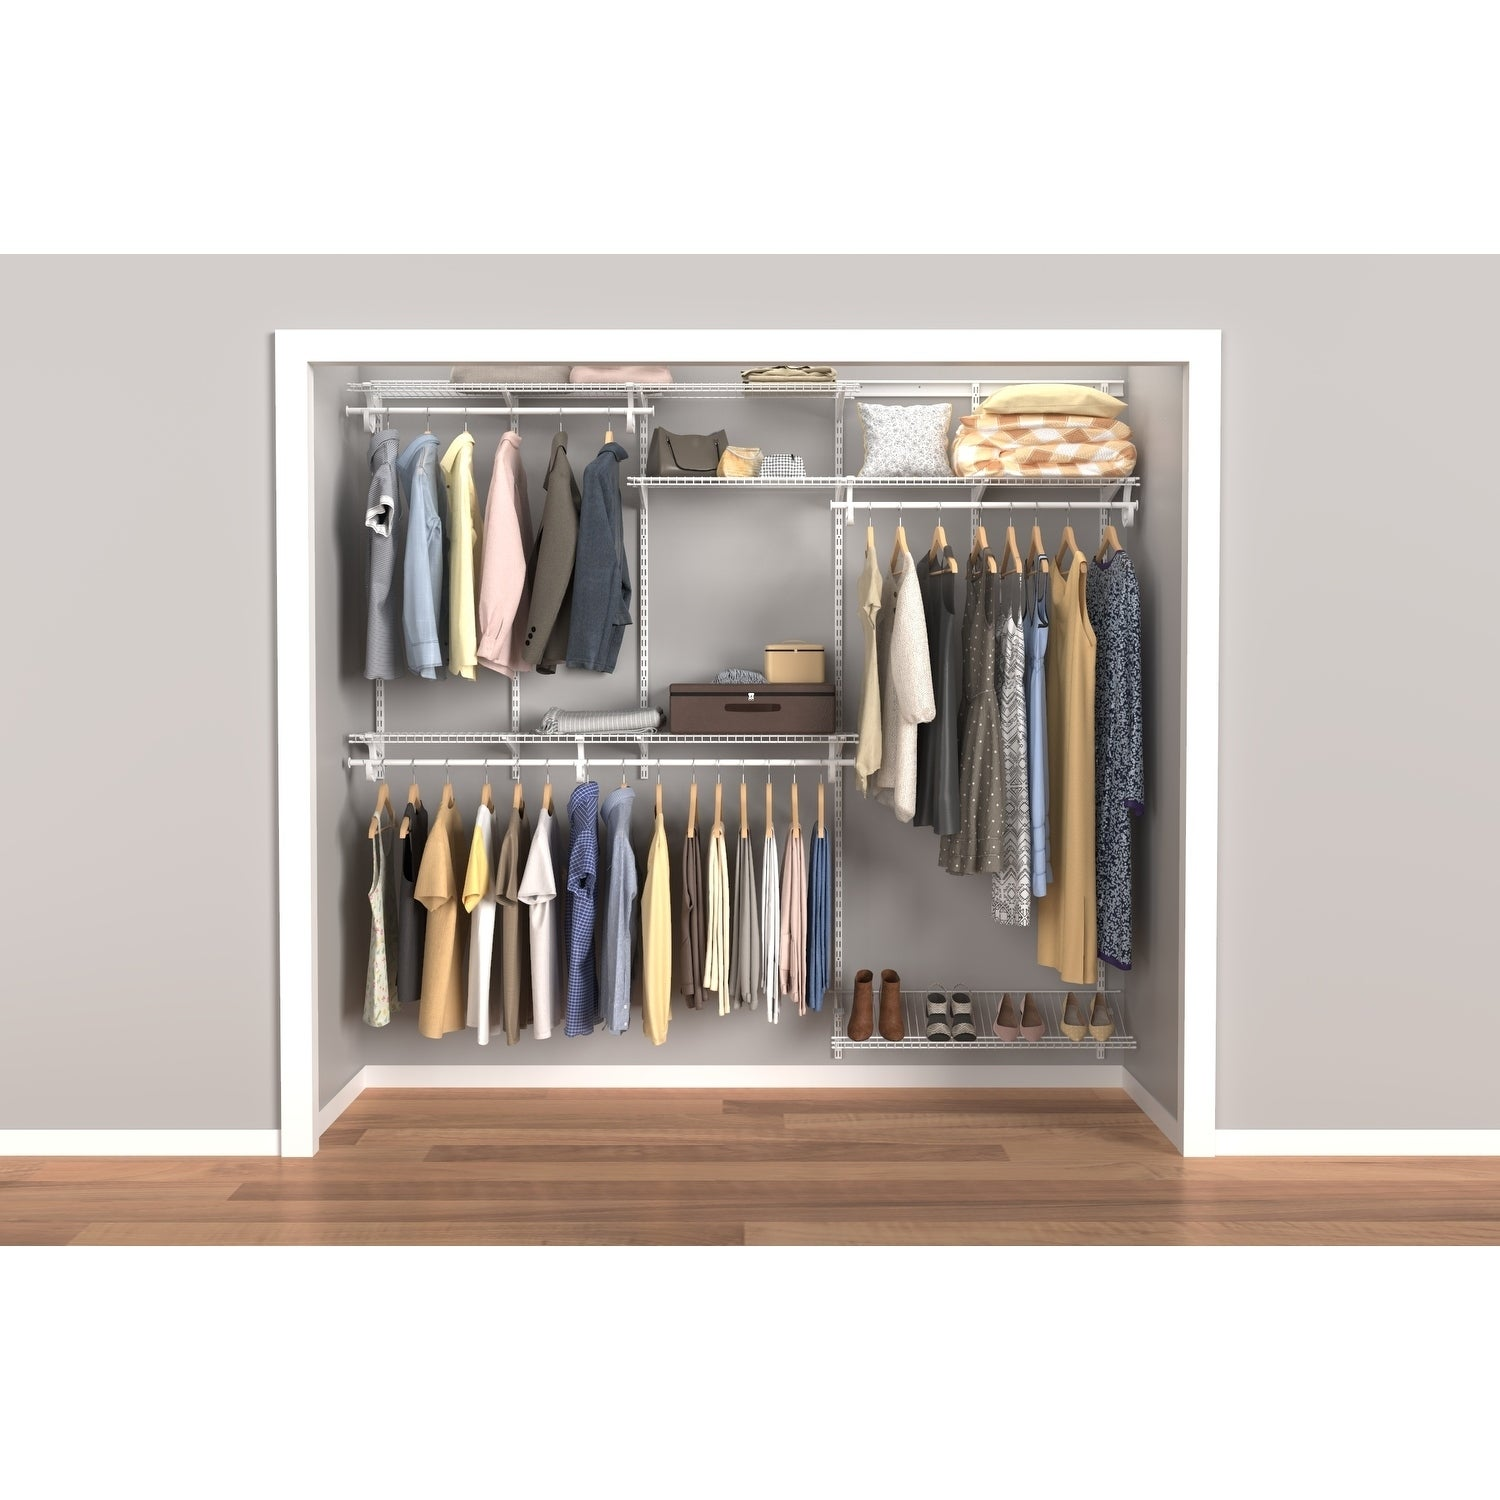 Closetmaid ShelfTrack 5ft to 8ft Closet Organizer Kit, Wh...